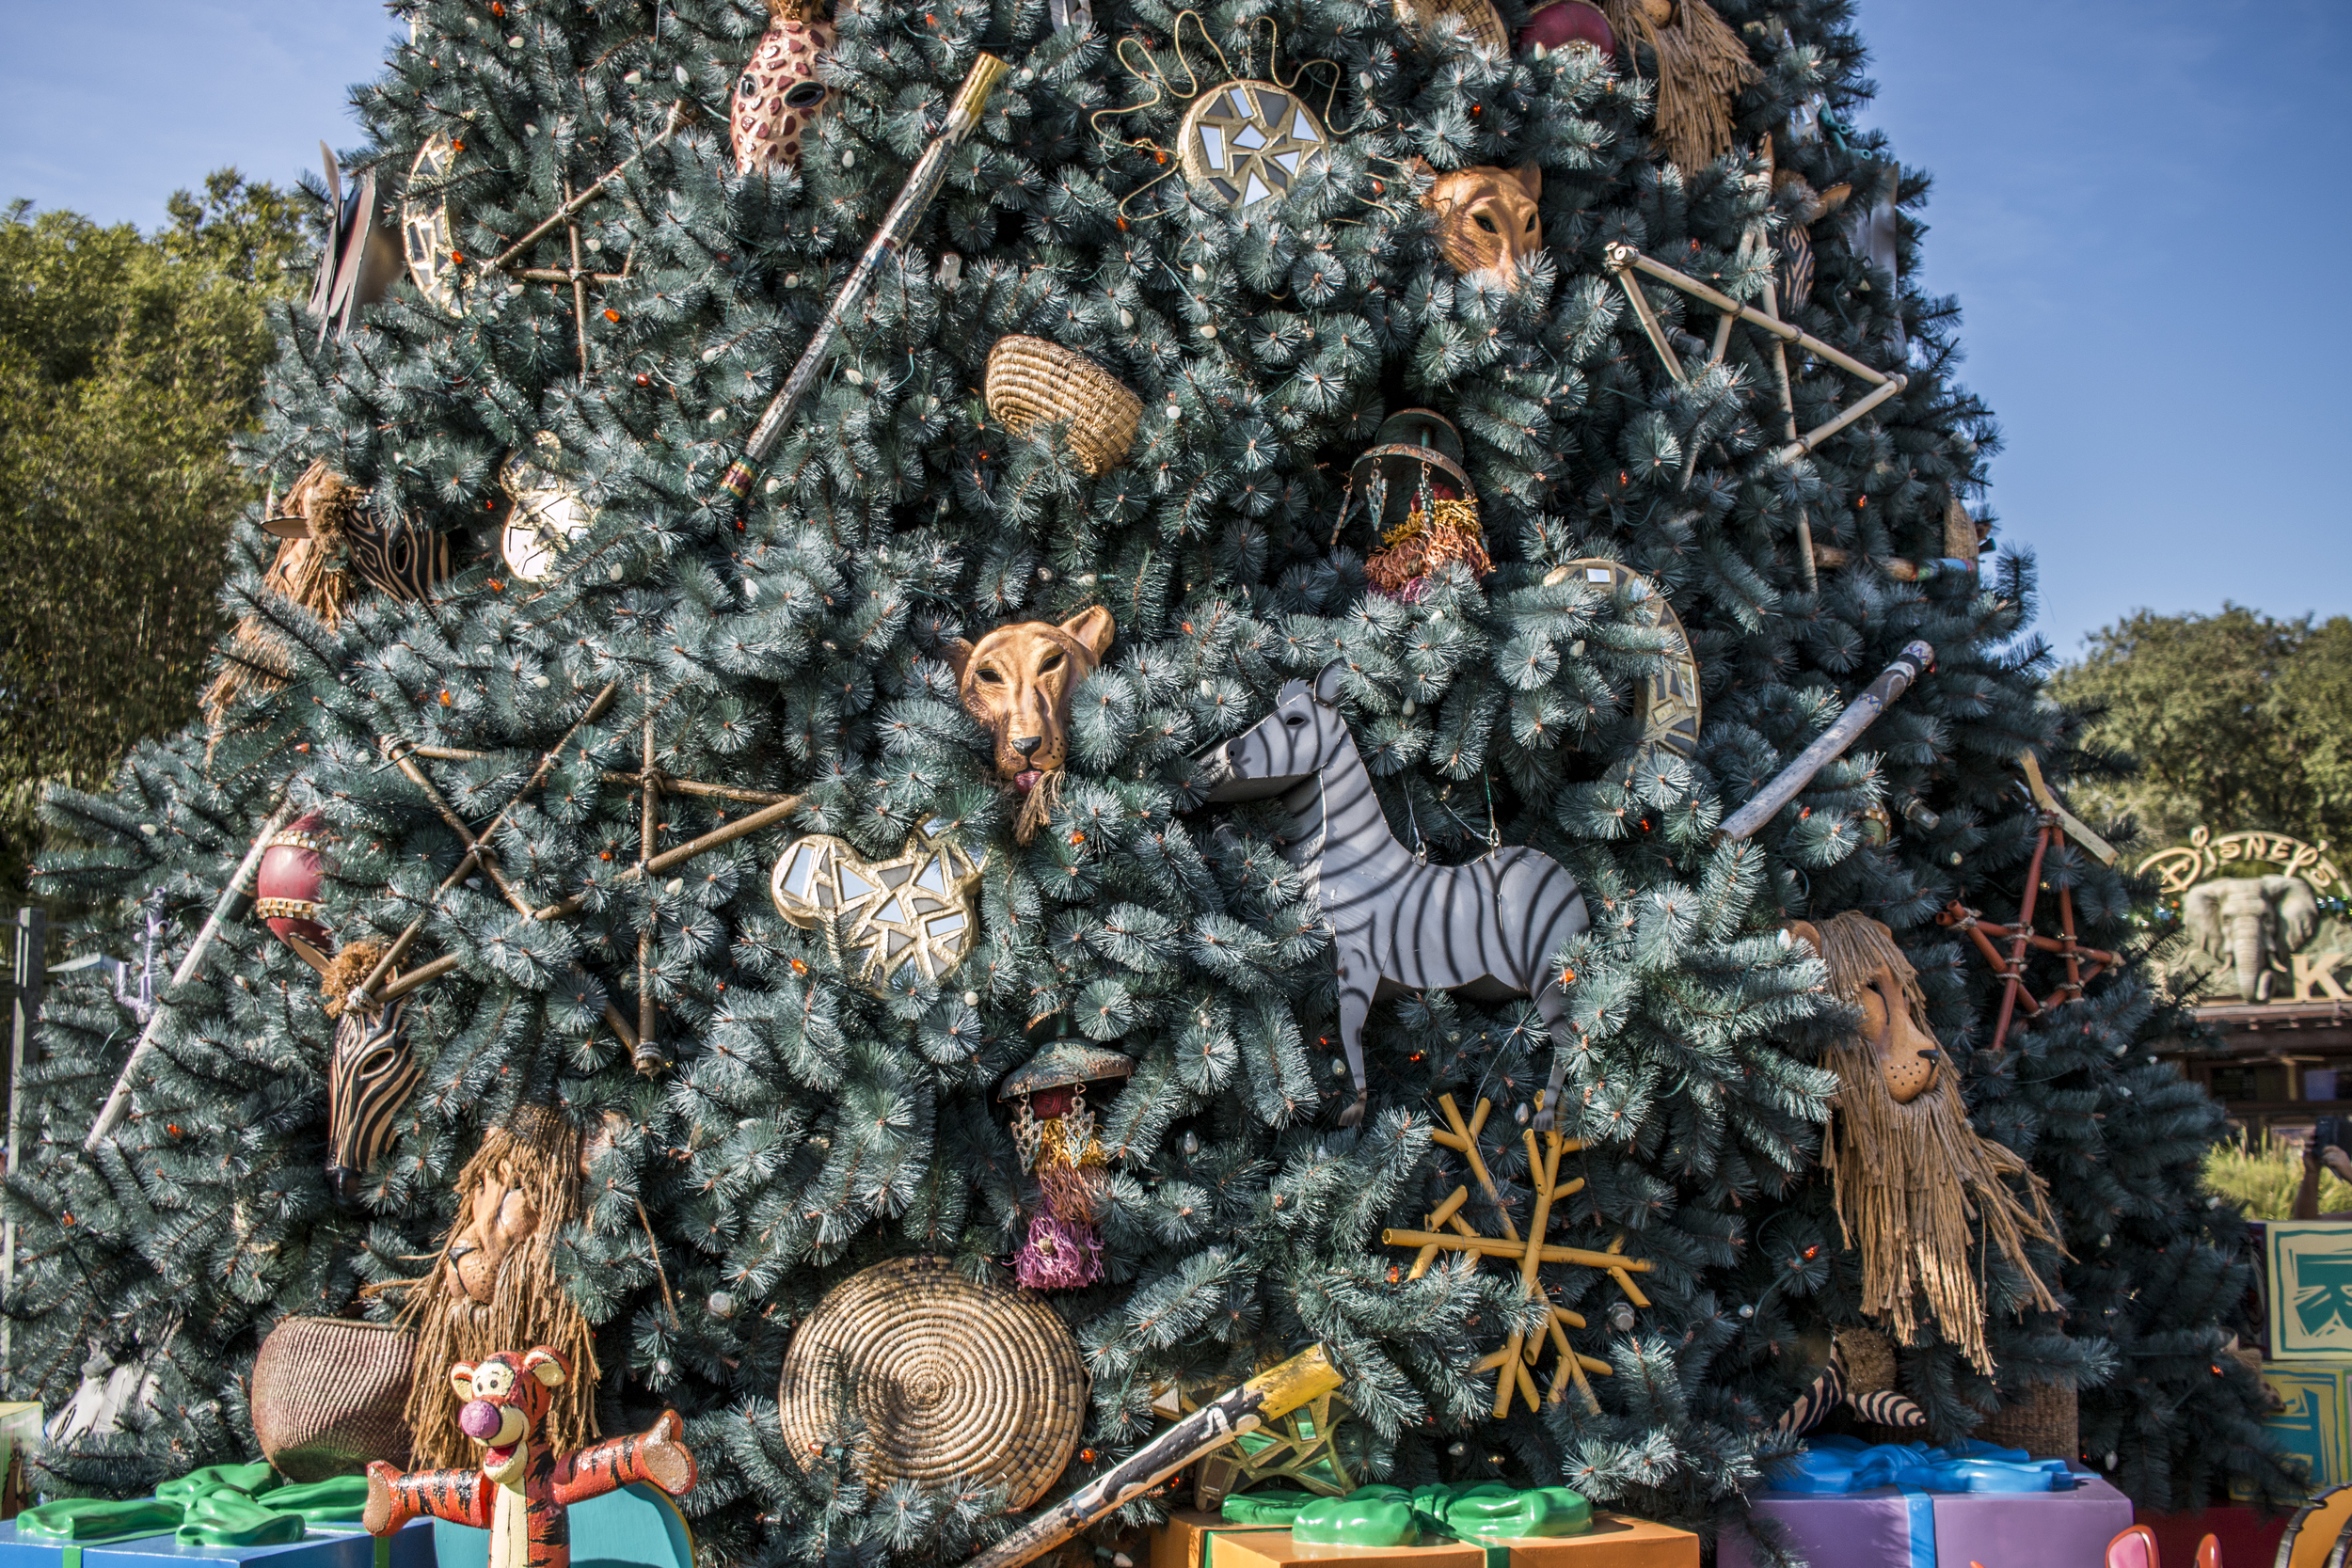 Animal Kingdom set up a Disney-animal-themed christmas tree, and it was very neat.